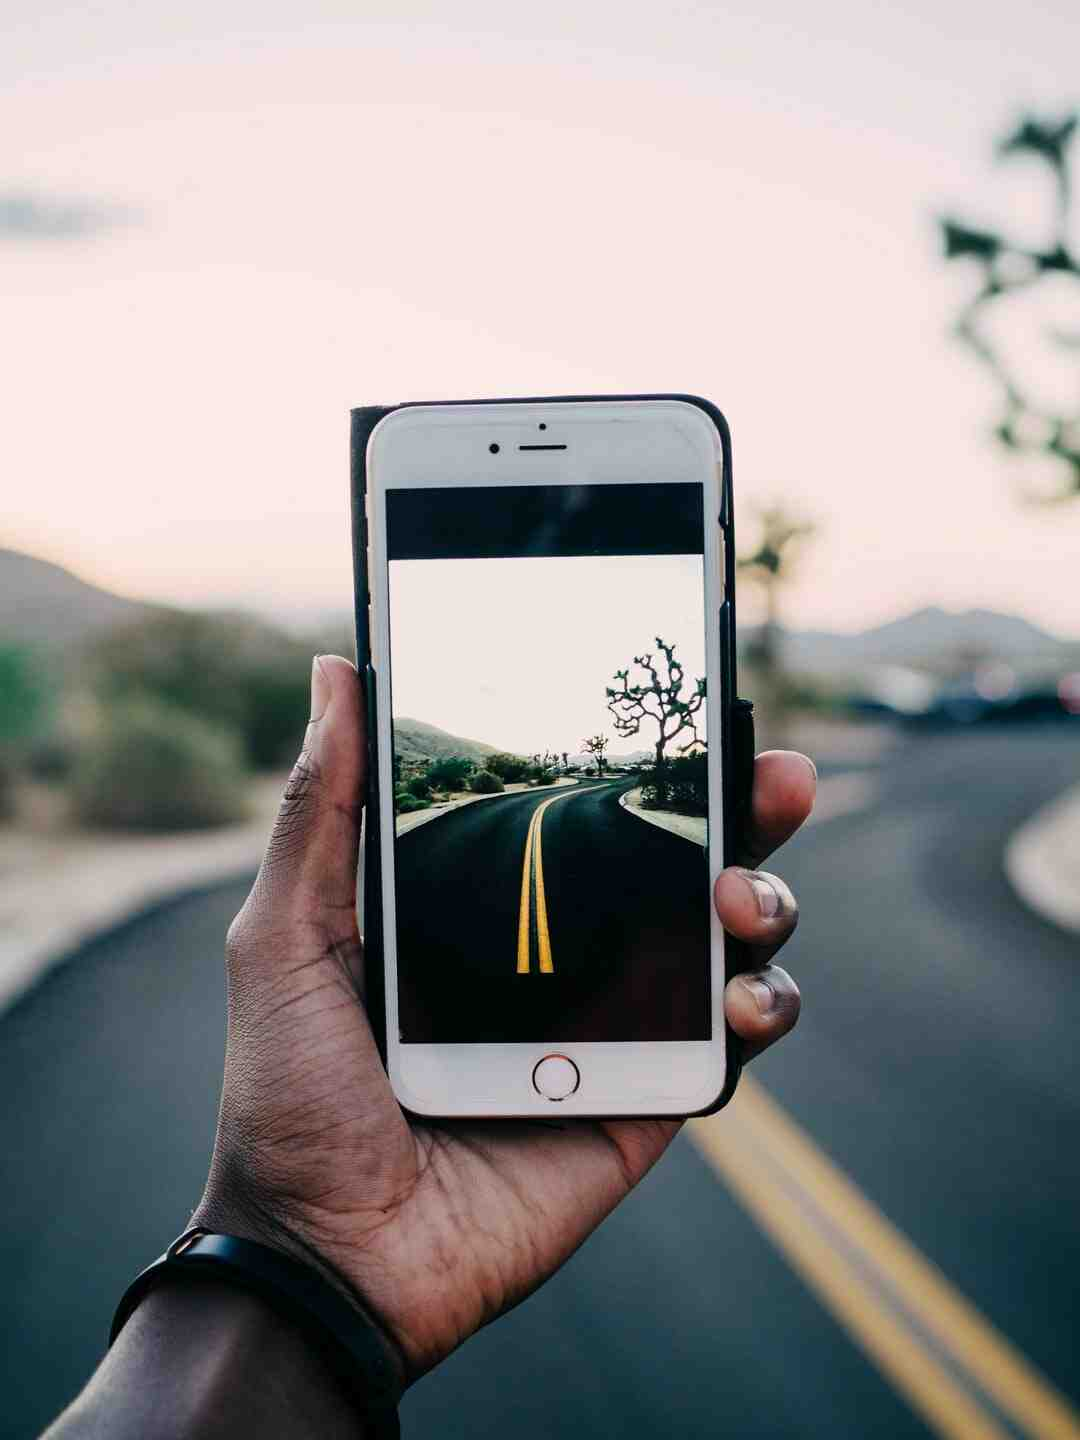 How to iphone screen record